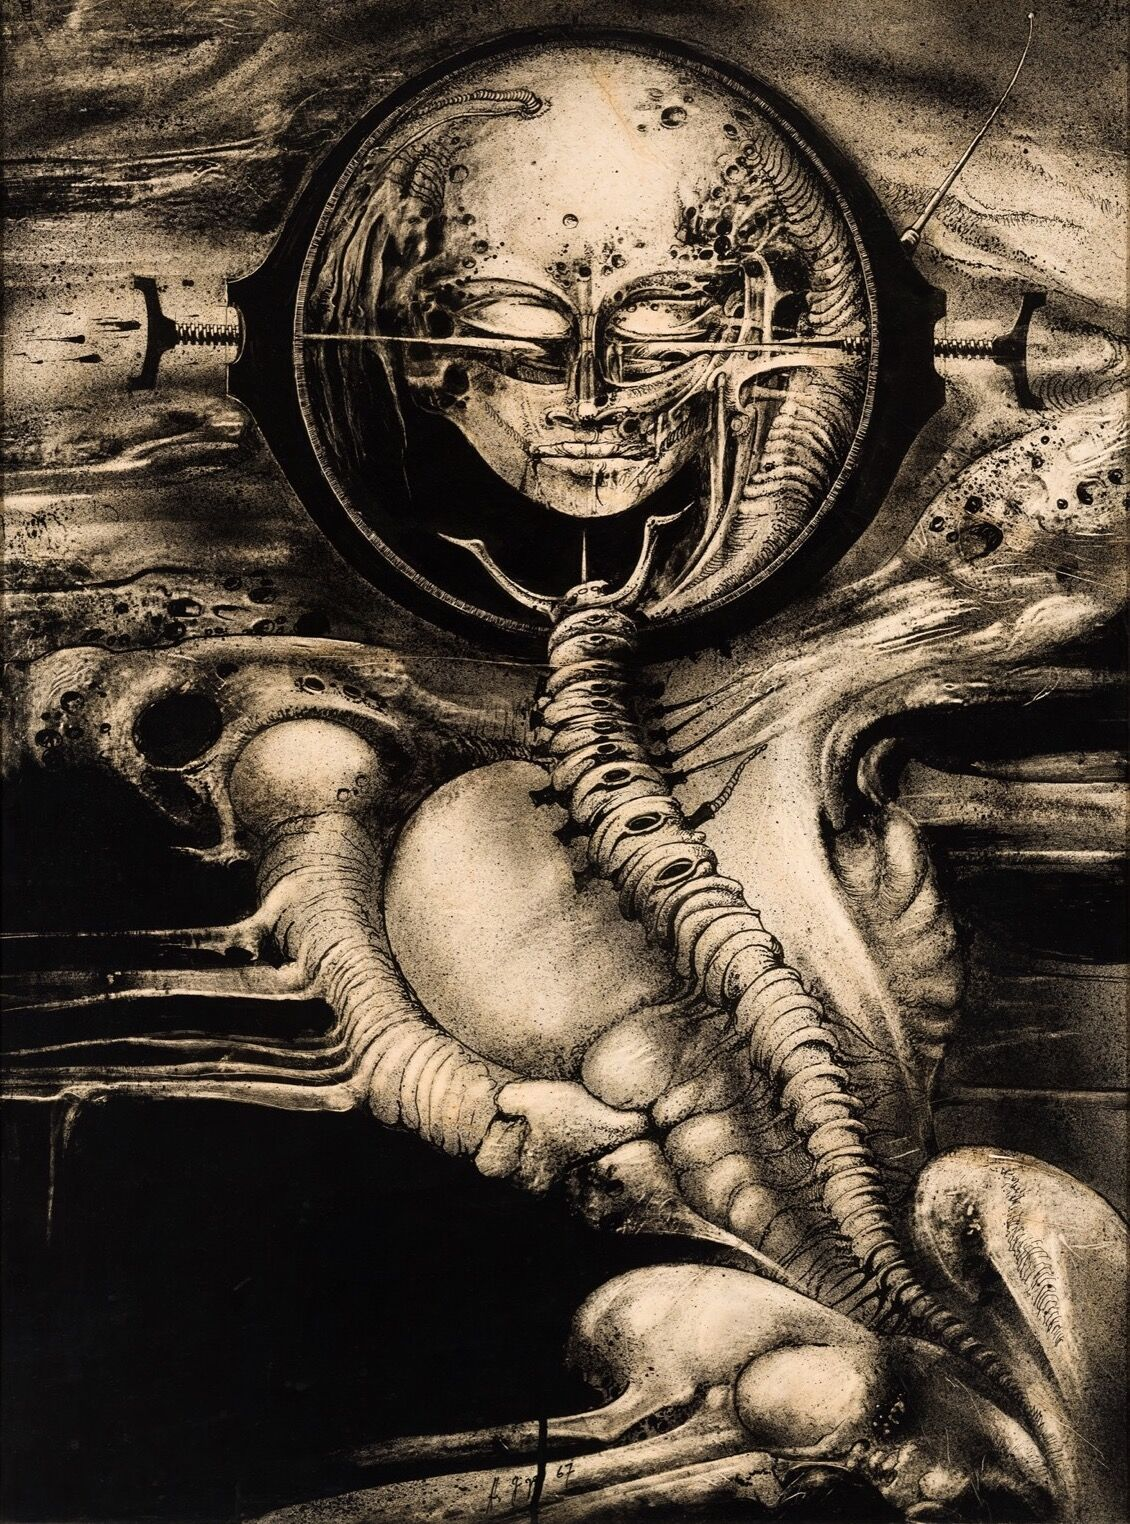 H.R. Giger, Cthulhu (Genius) III, 1967. Courtesy of the H.R. Giger Museum.